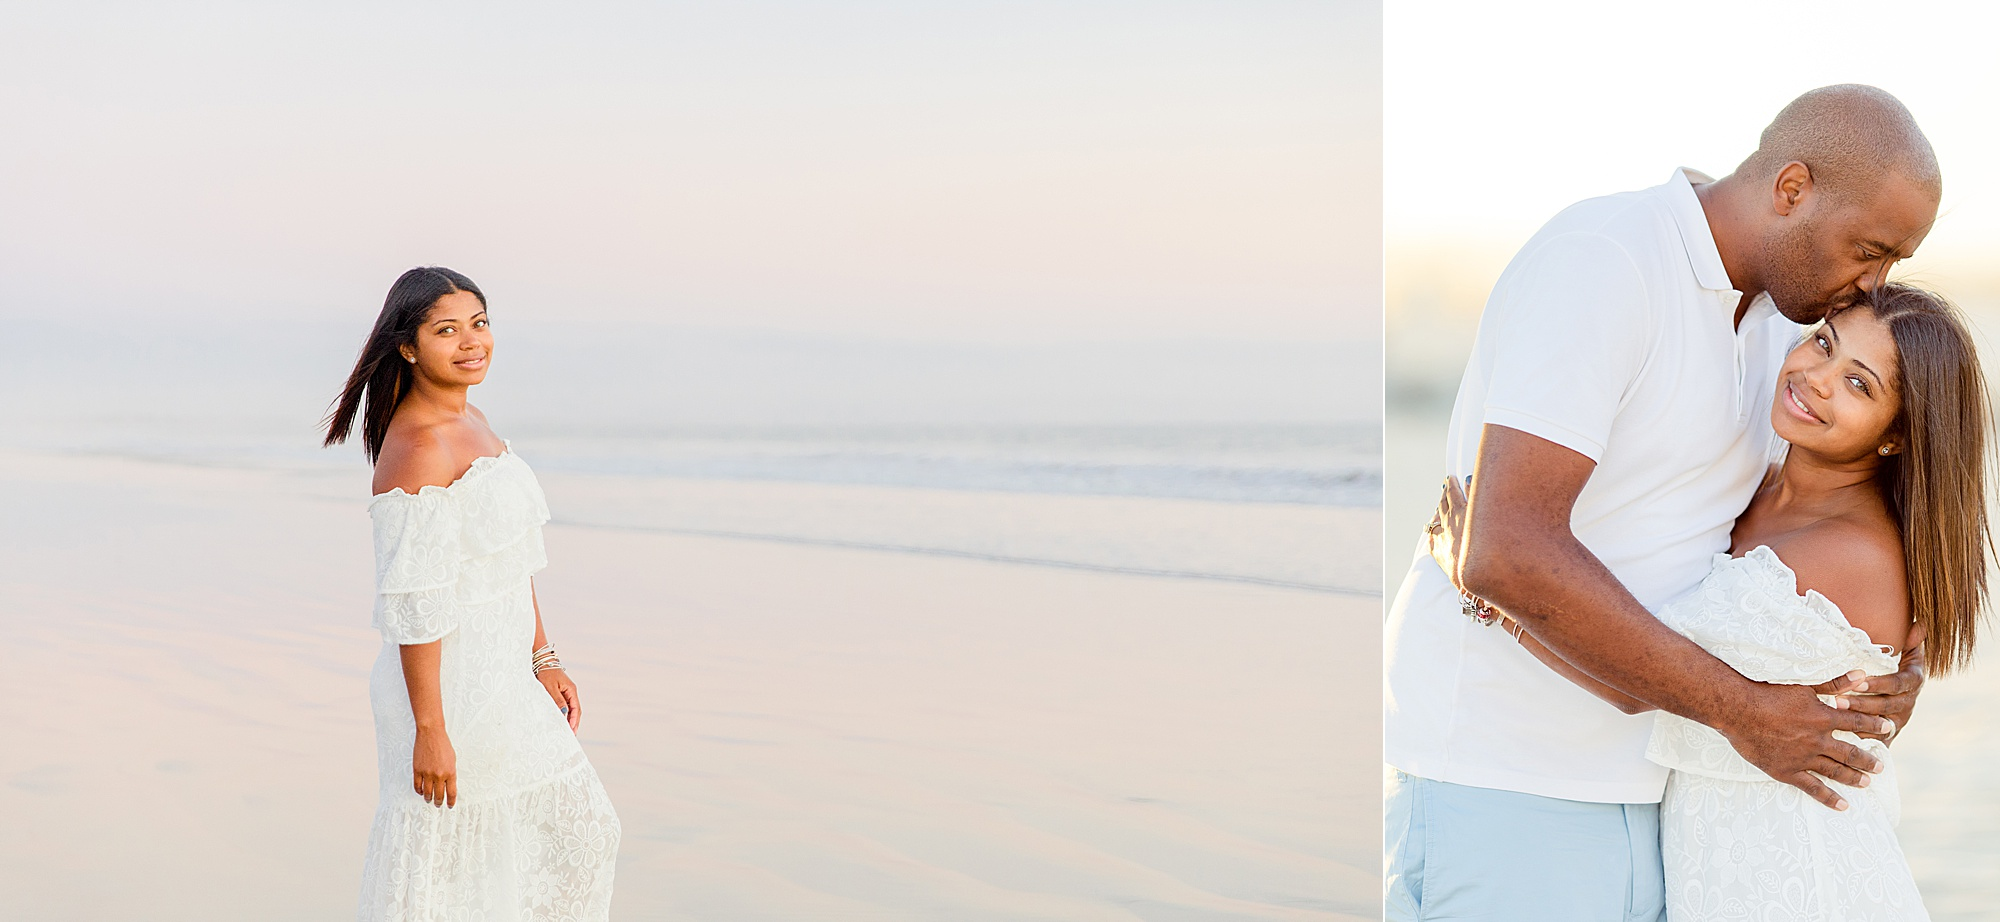 Couple Photography | San Diego Photographers